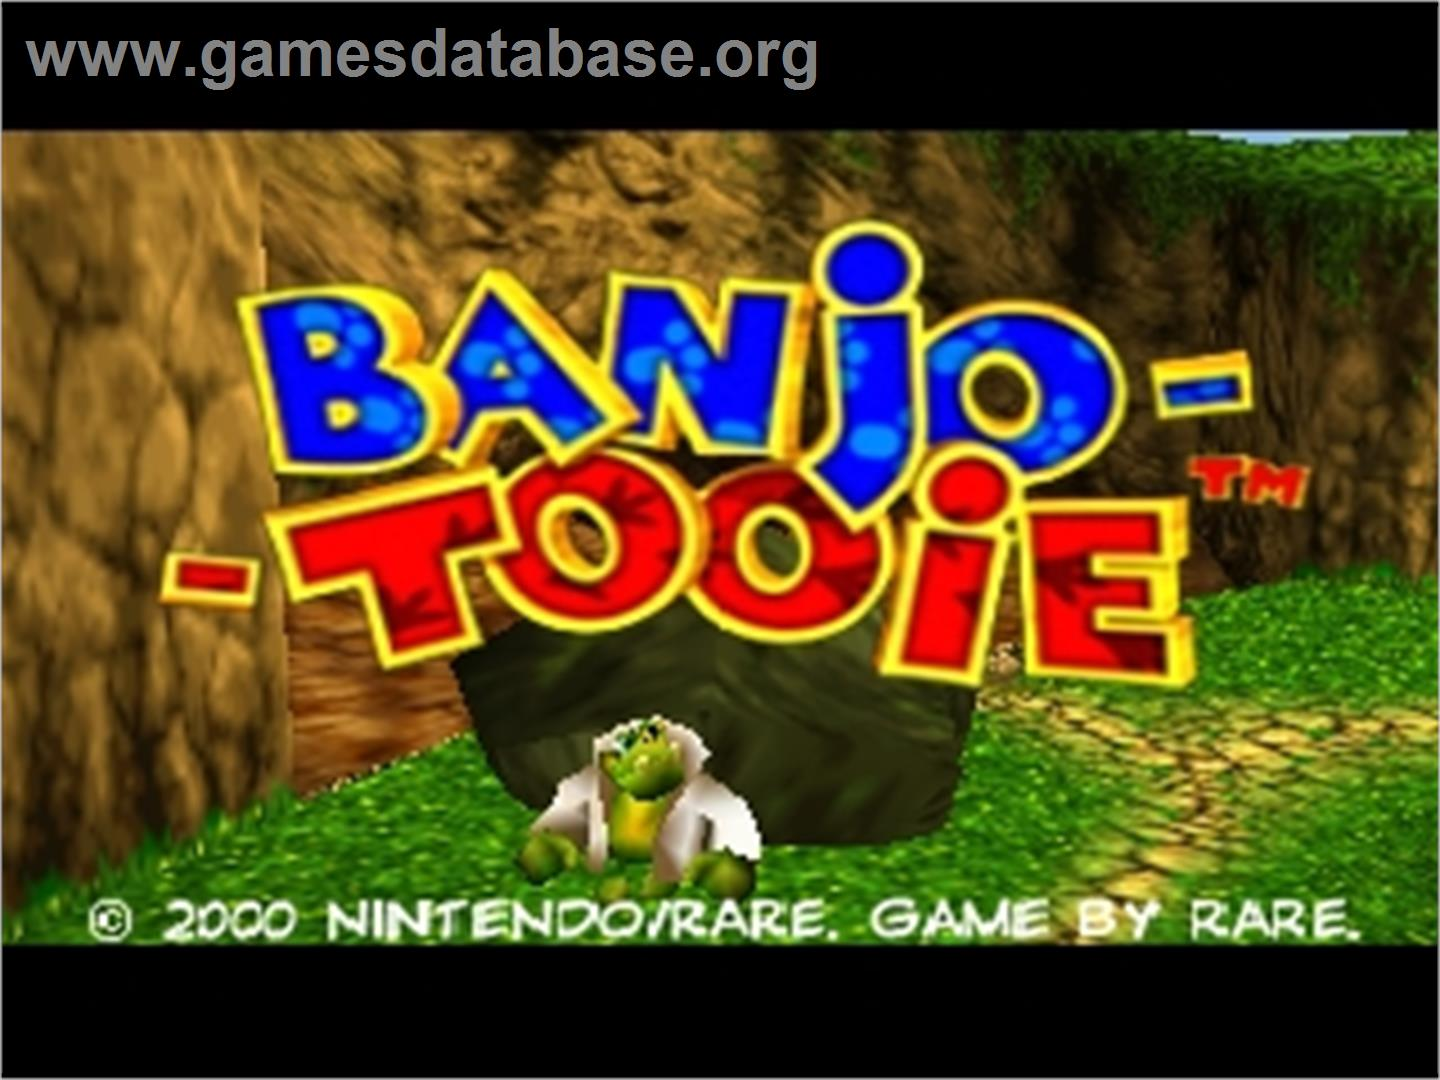 Banjo-Tooie - Nintendo N64 - Artwork - Title Screen